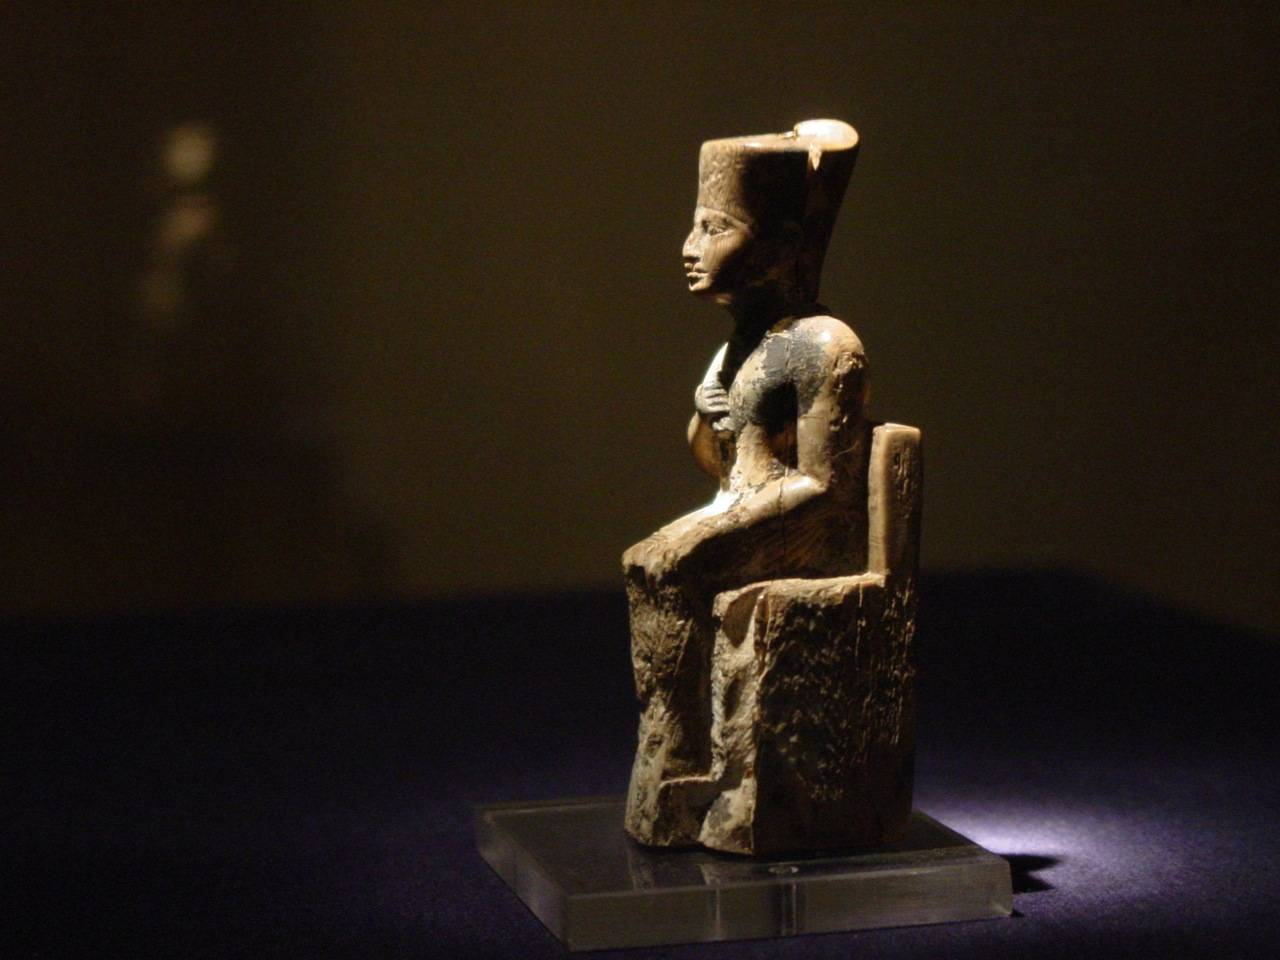 The figurine of Khufu measures 7.9cm (3in) high. It was discovered headless in 1903 by Flinders Petrie at the Kom el-Sultan necropolis at Abydos. Petrie offered a reward to anyone who could find the head. Three weeks later it was discovered.